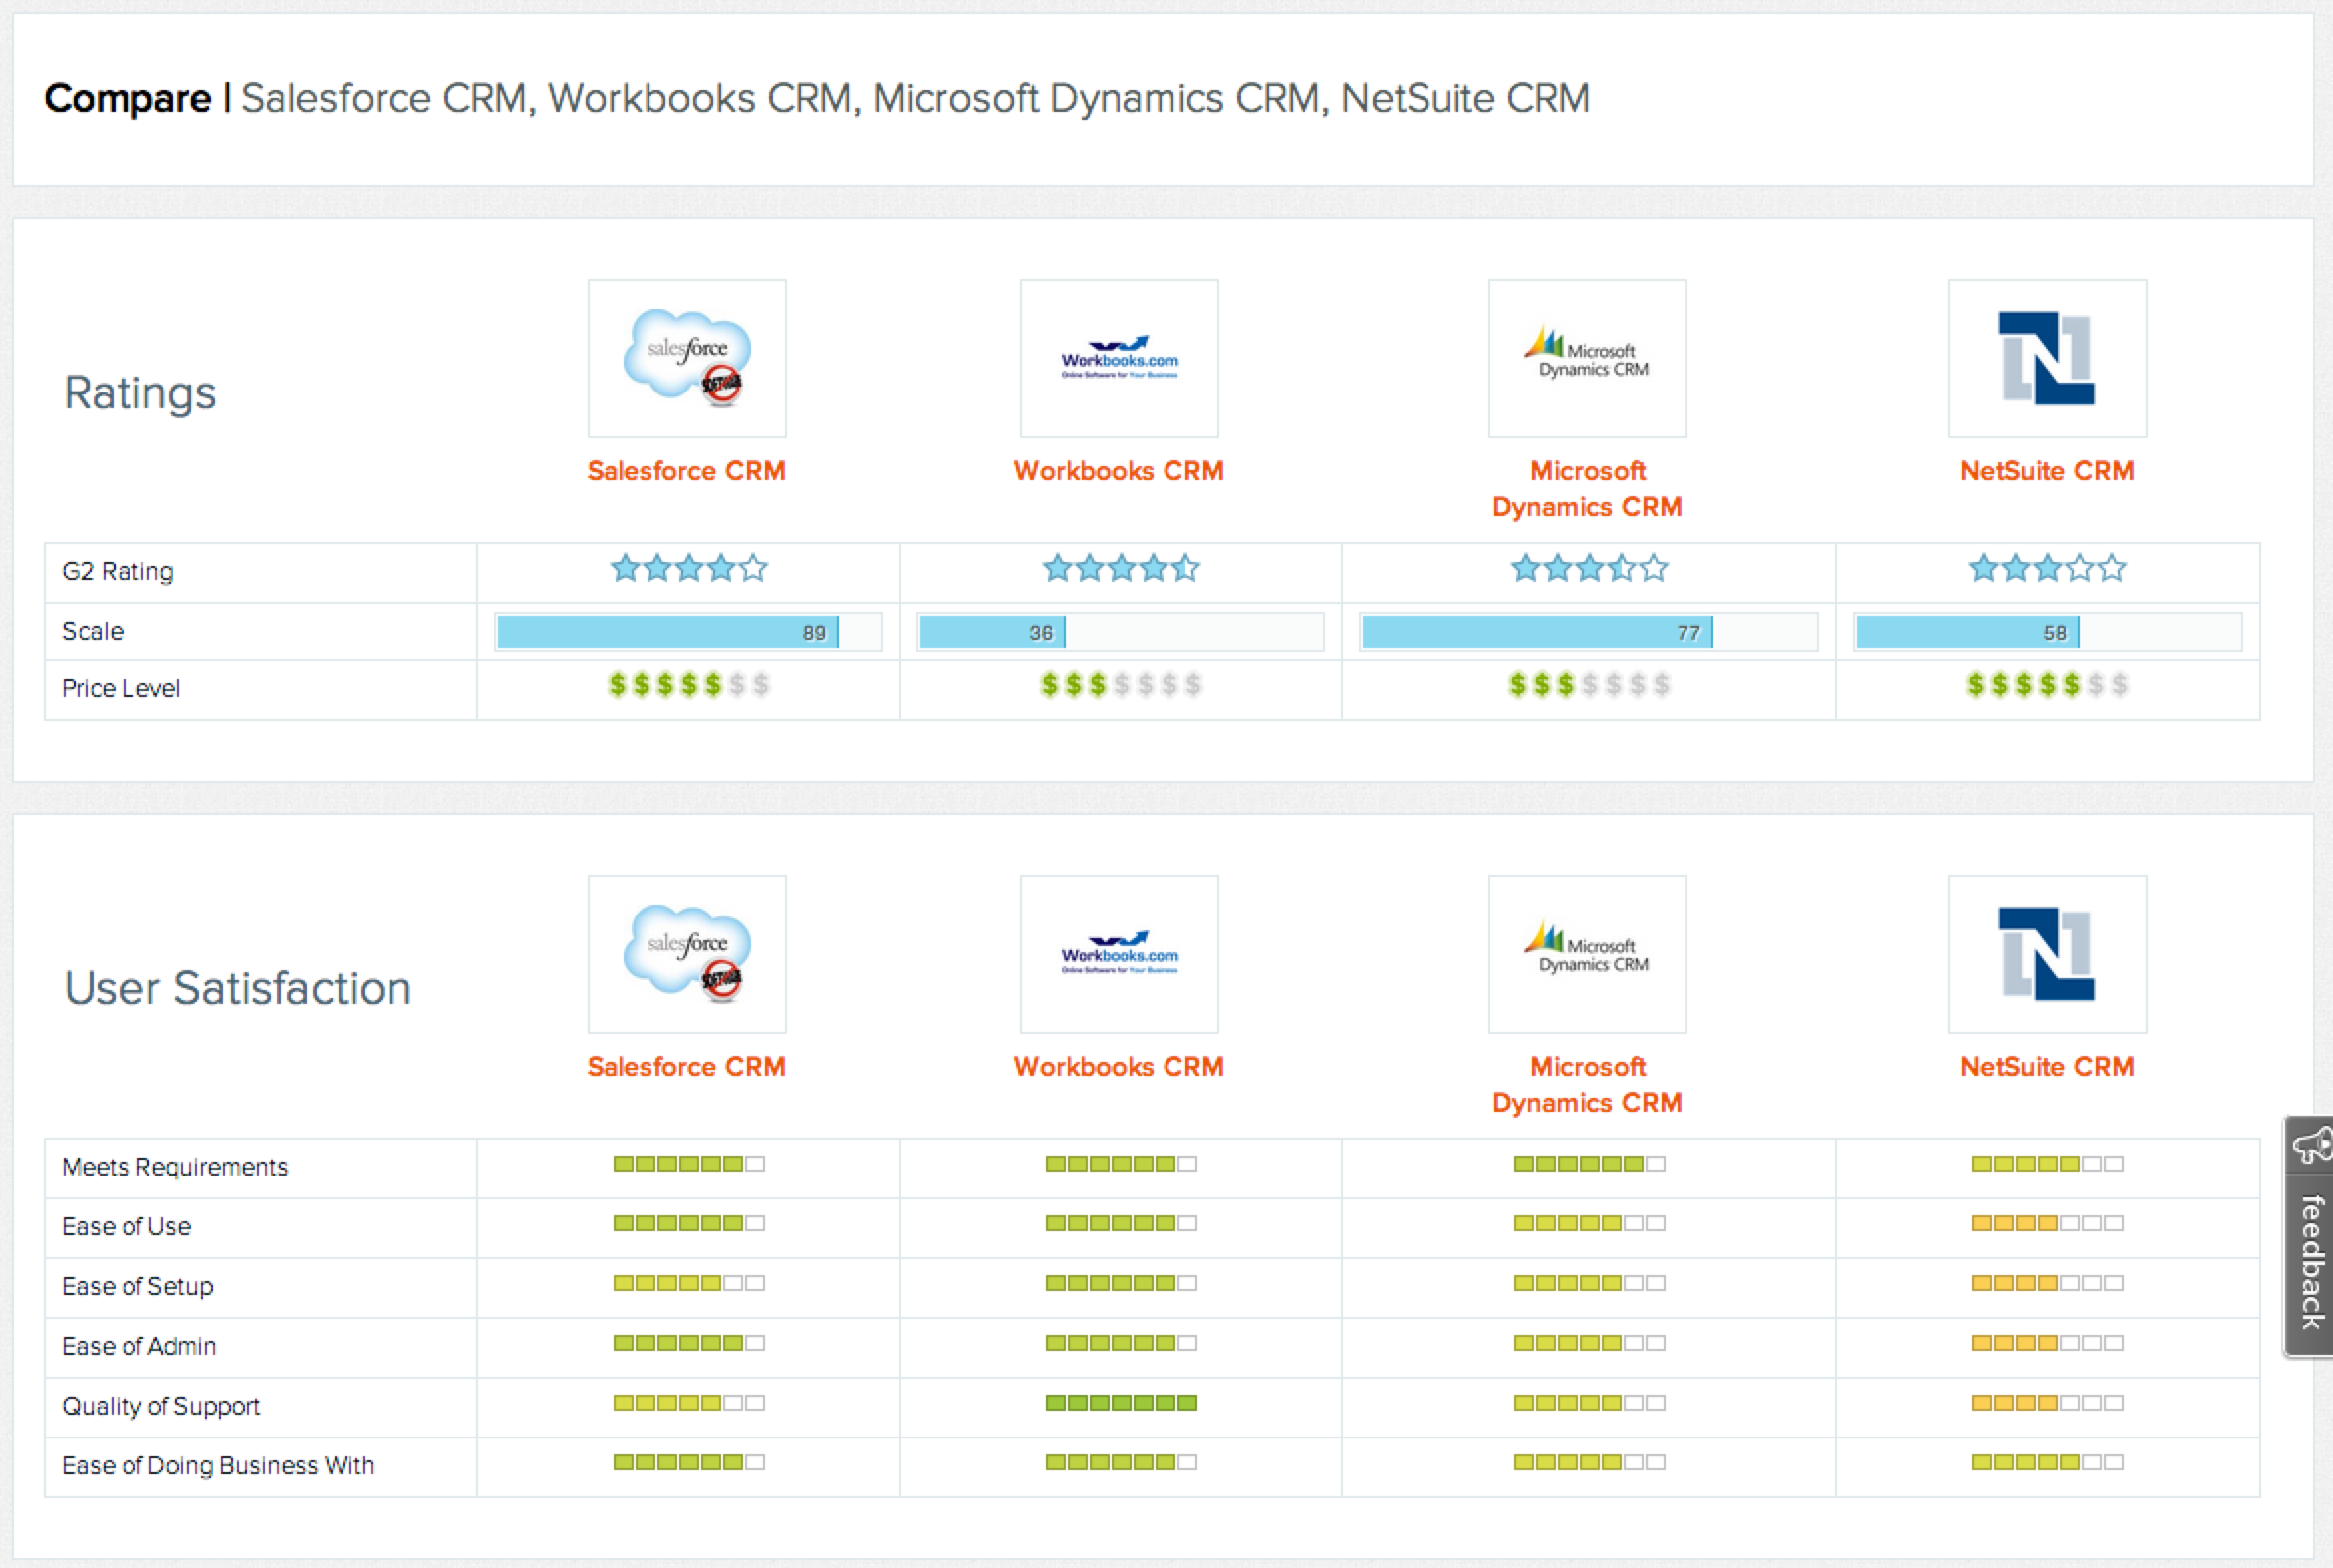 CRM Research - Detailed Feature Comparison